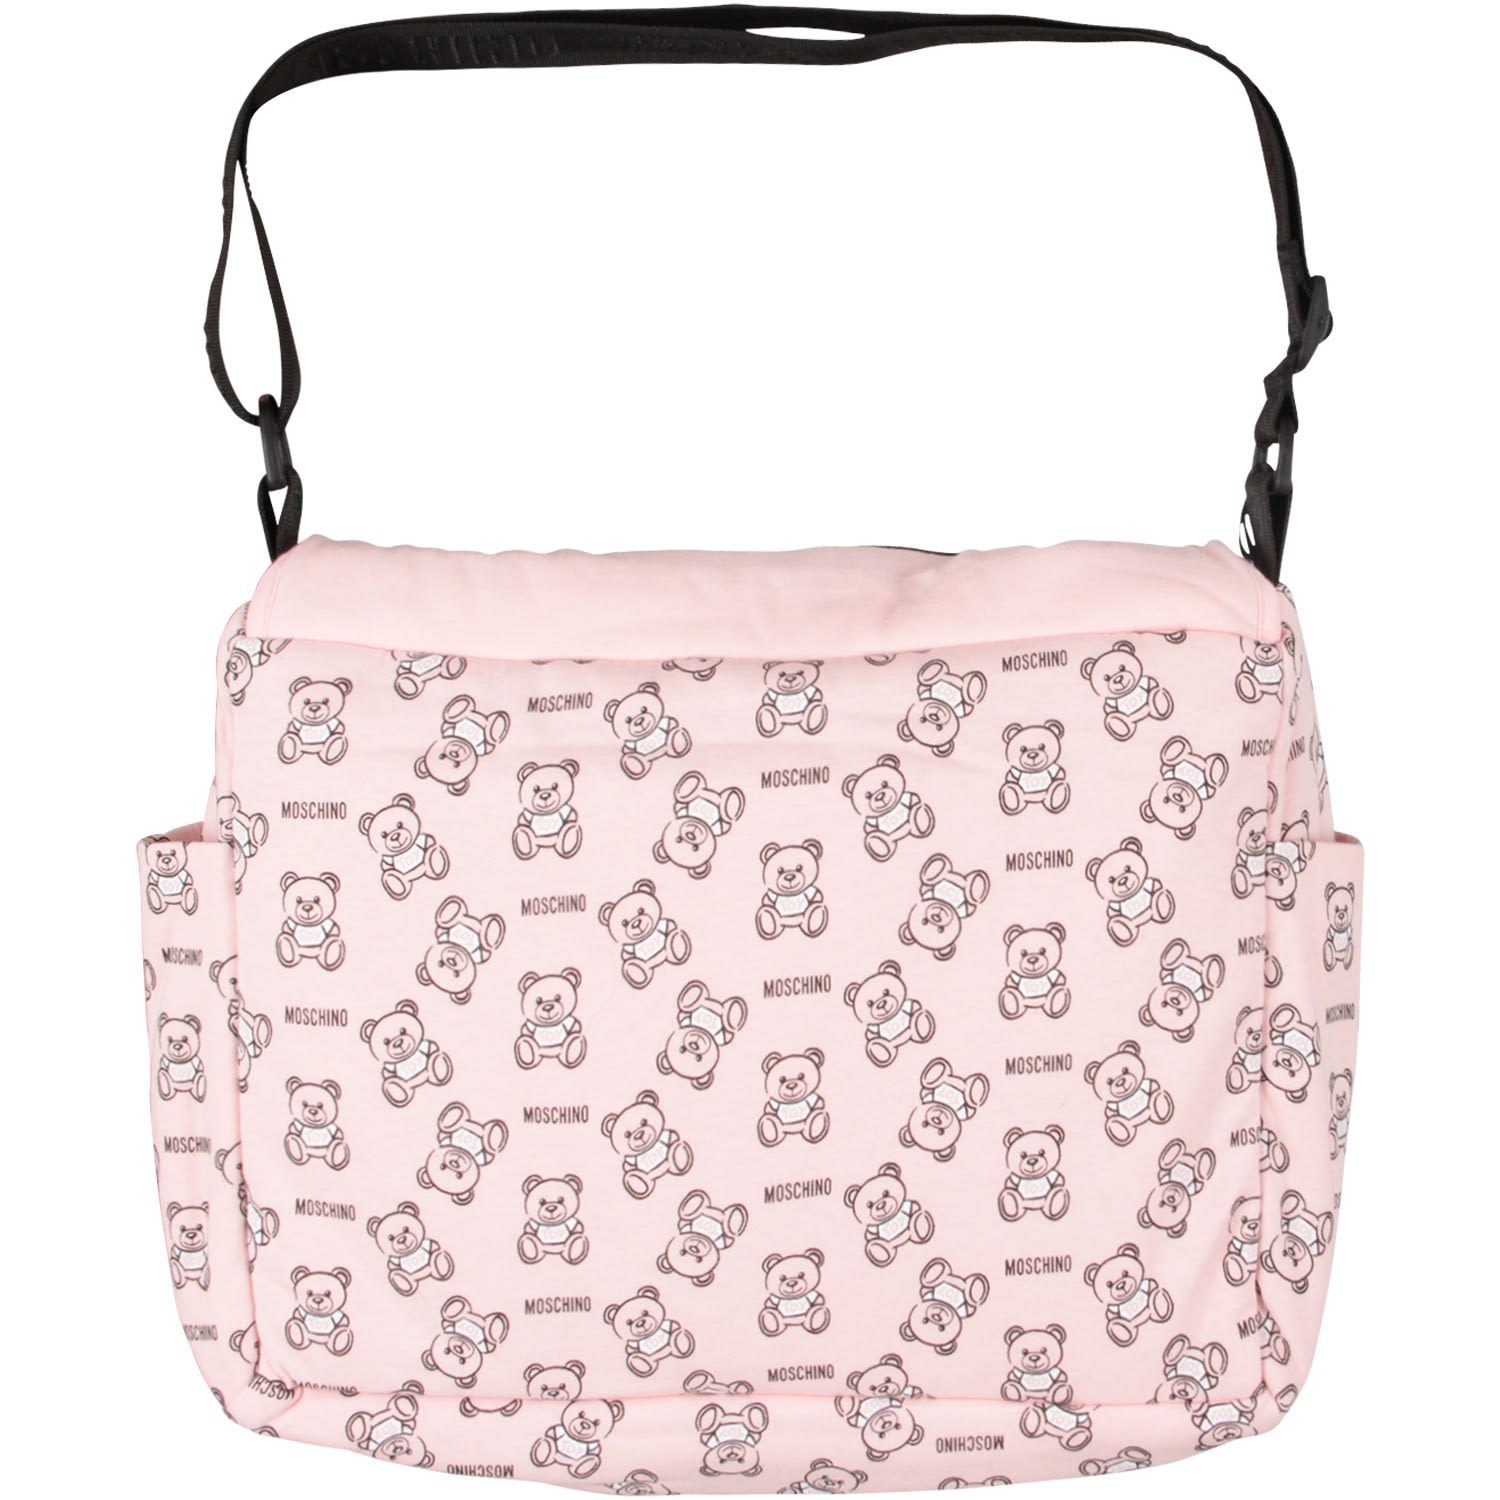 ade8fa127 ... Moschino Pink Babygirl Changing Bag With Black Teddy Bear And Logo -  Pink